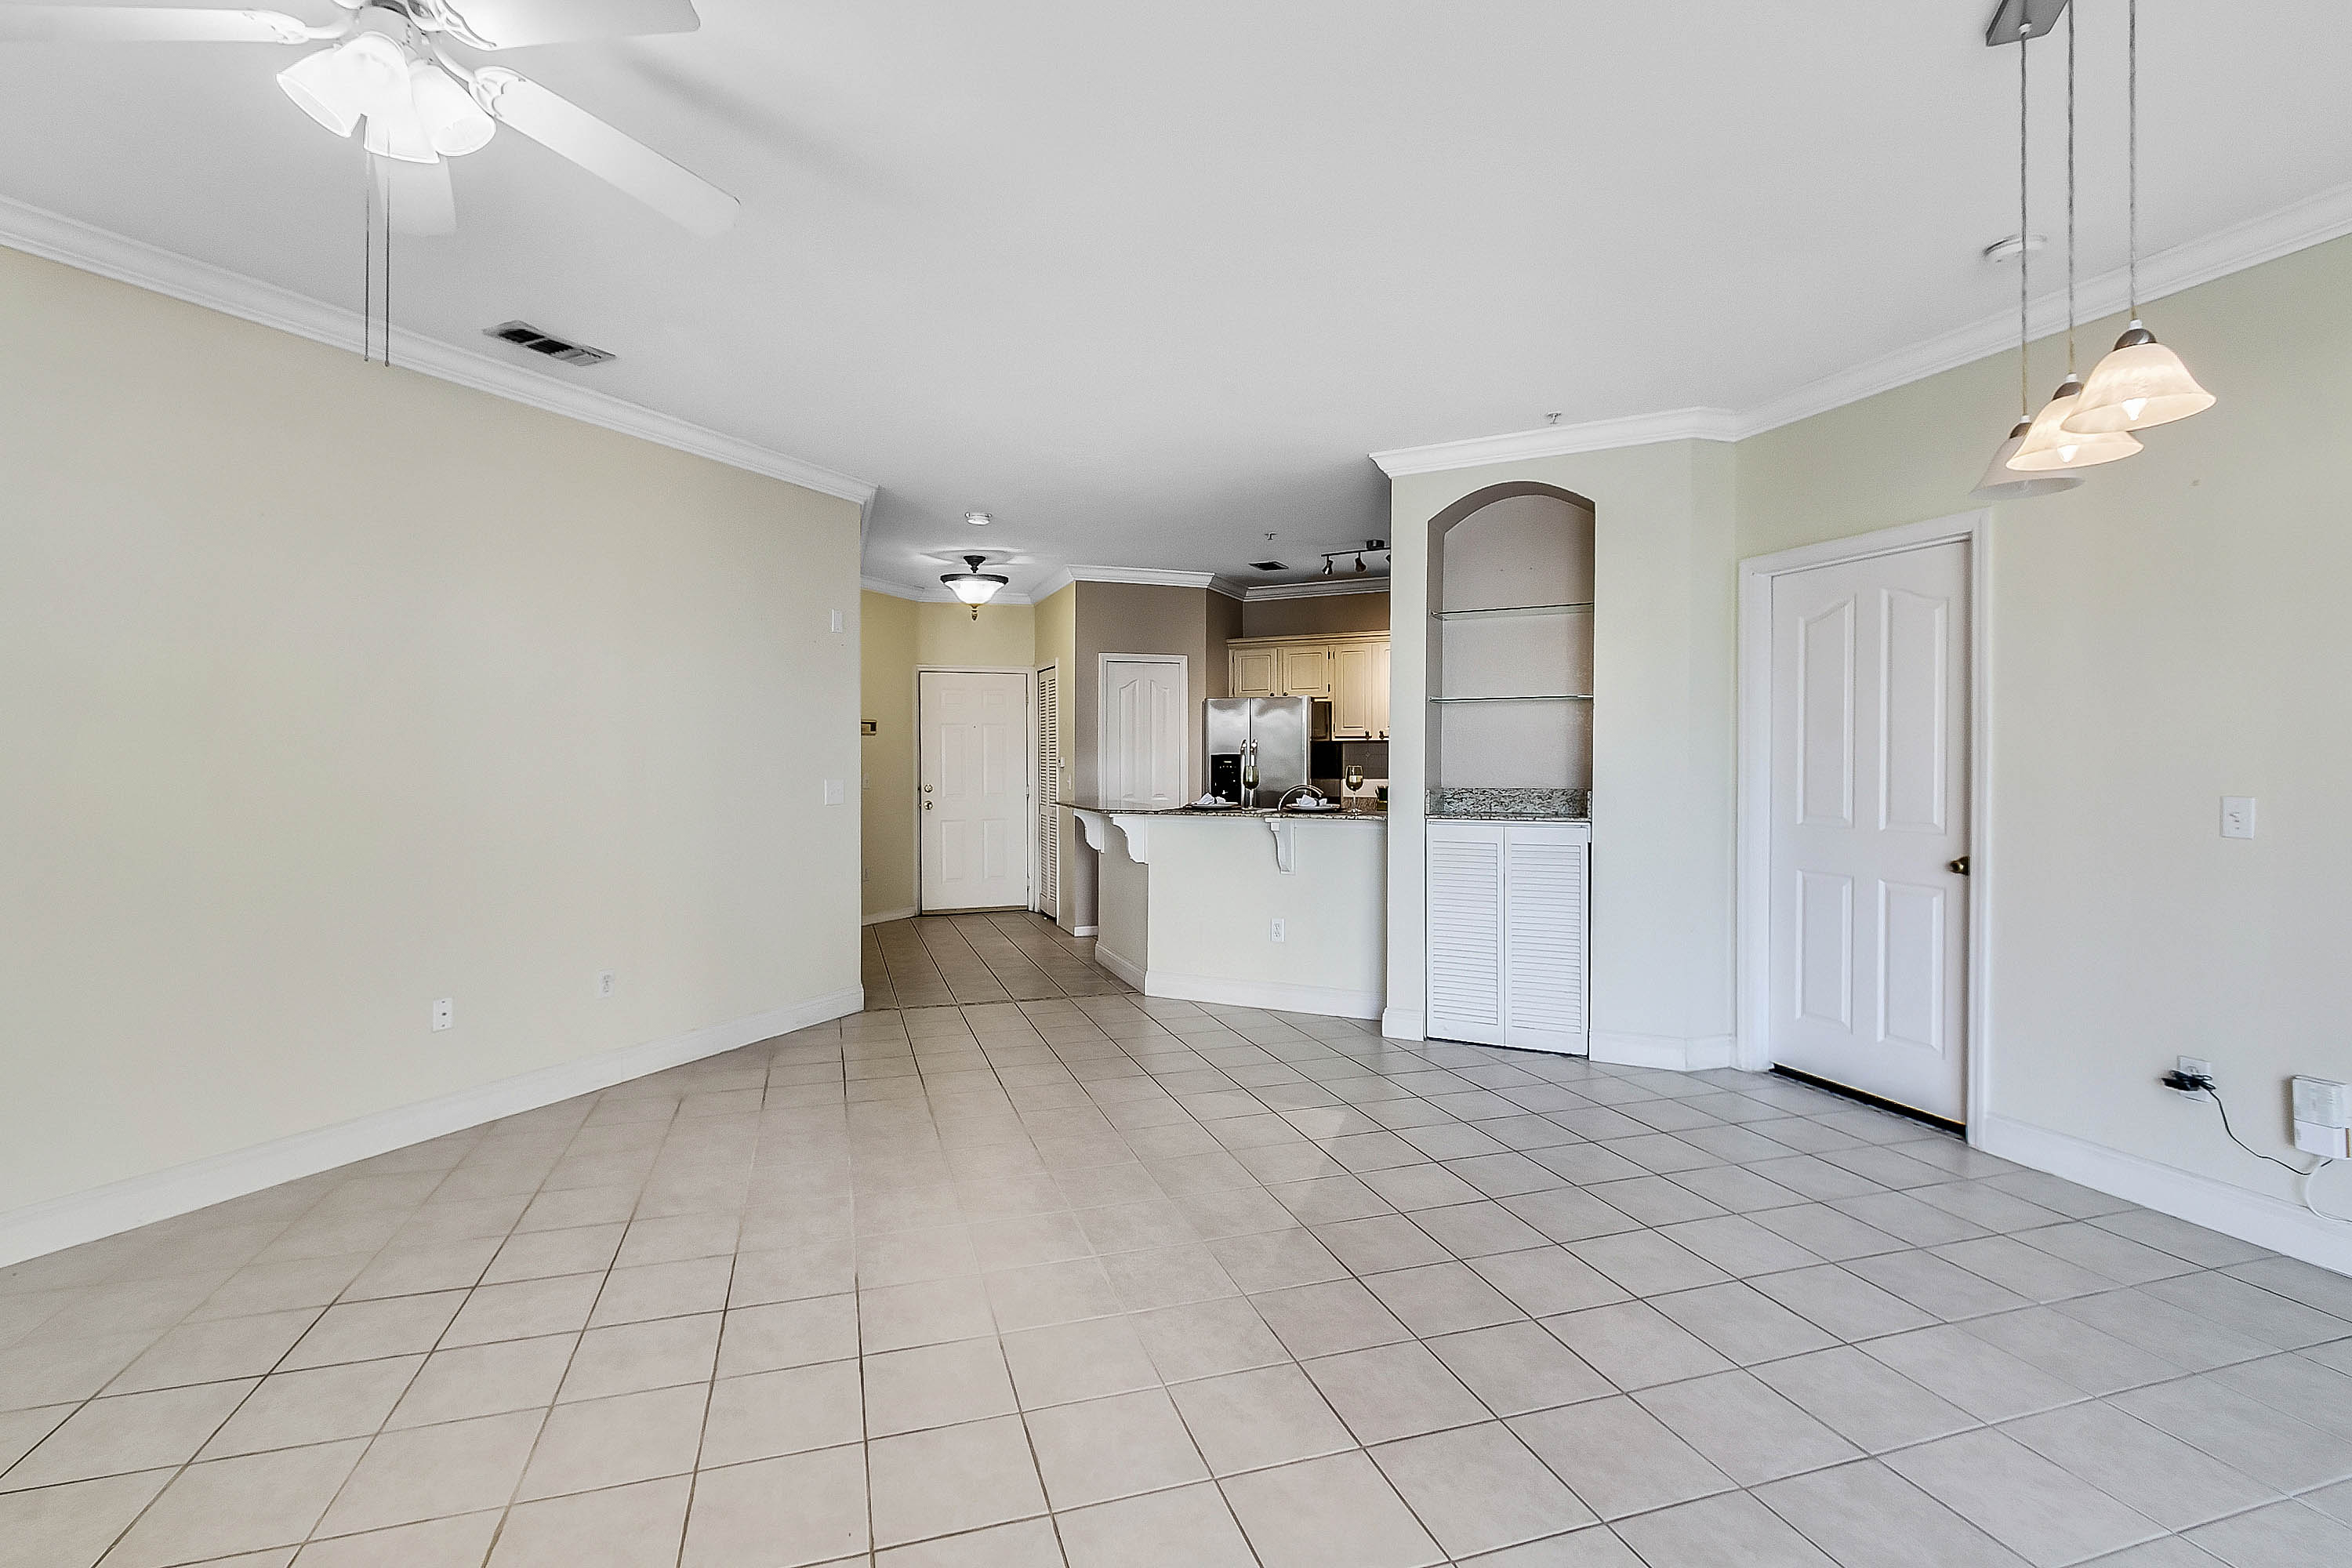 2639-maitland-crossing-way--unit-101--orlando--fl-32810----15.jpg